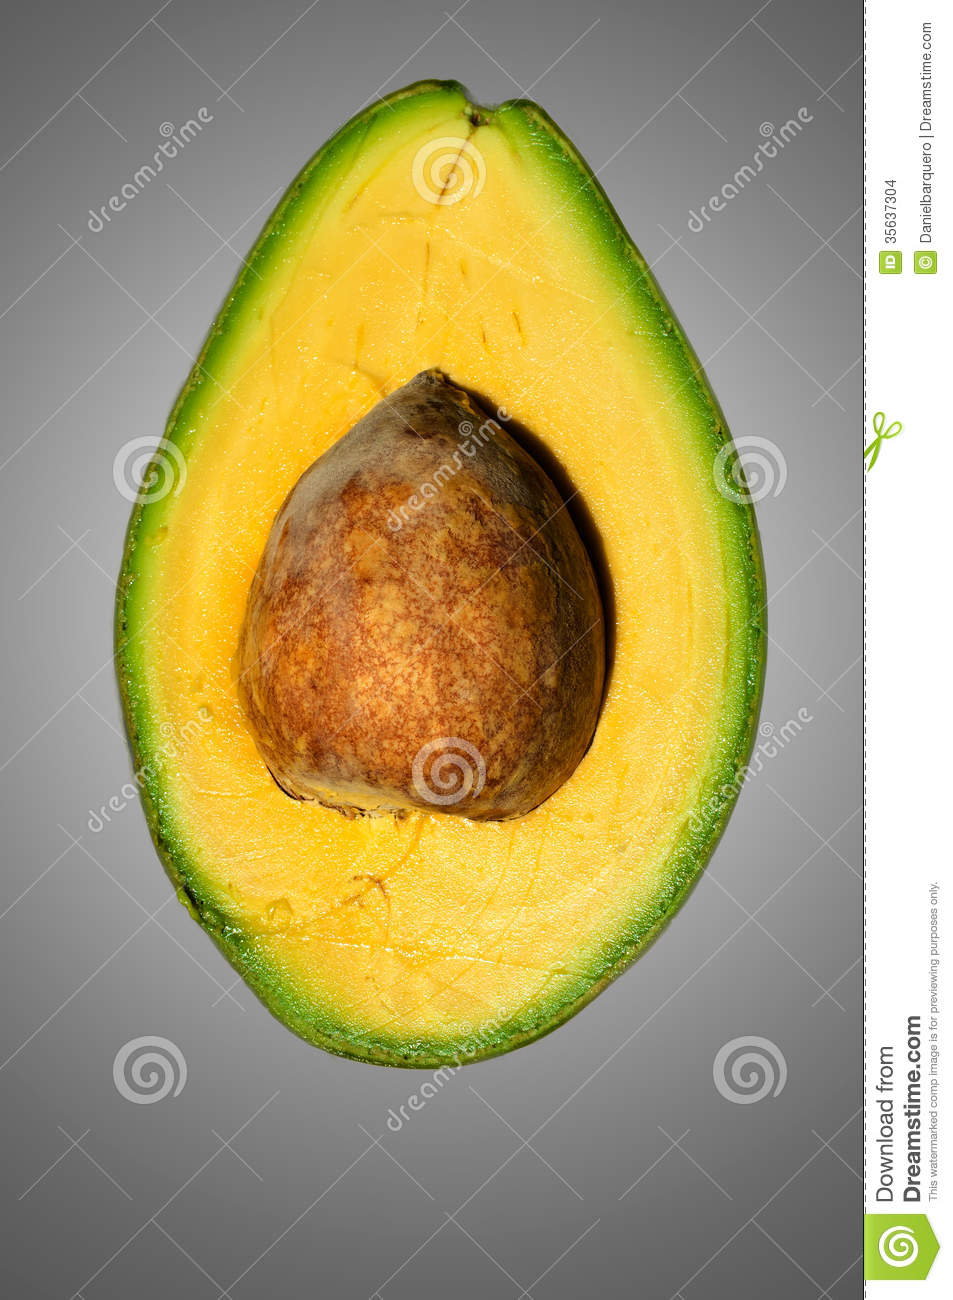 how to eat avocado pear seed